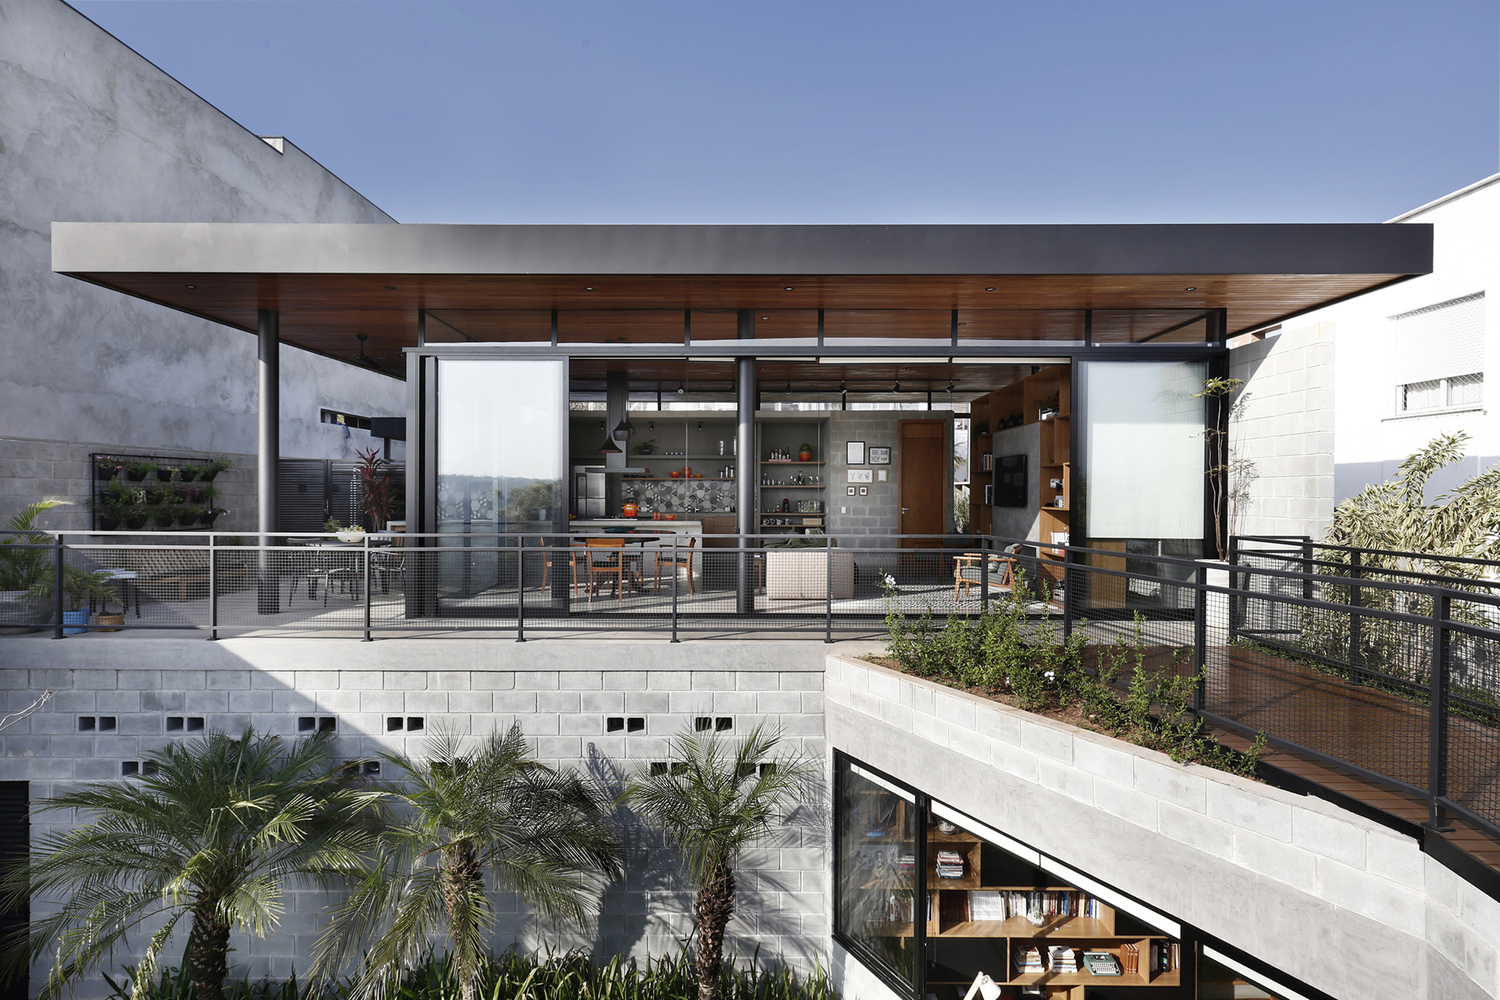 Views Abound at the Terraced Modern RD House in Brazil